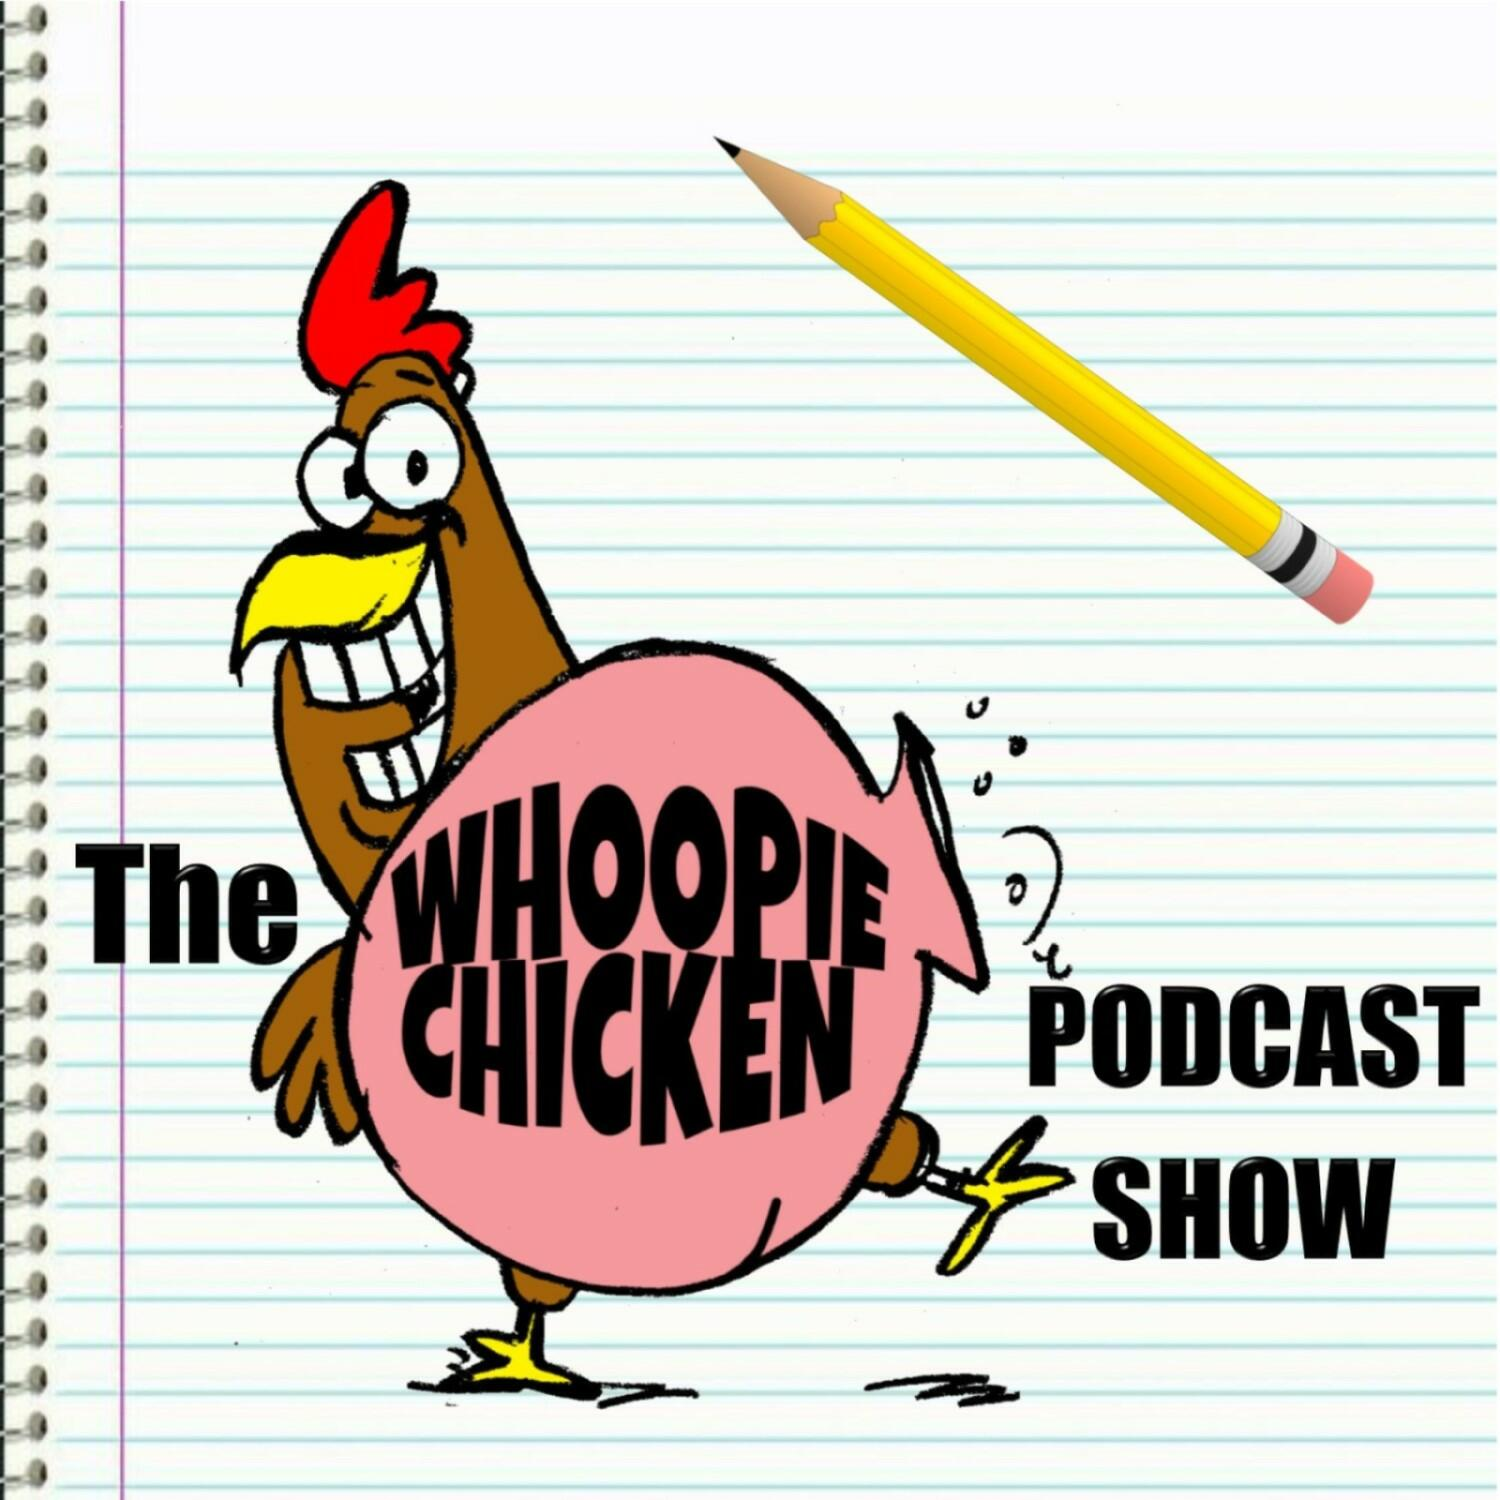 The Whoopie Chicken Podcast Show